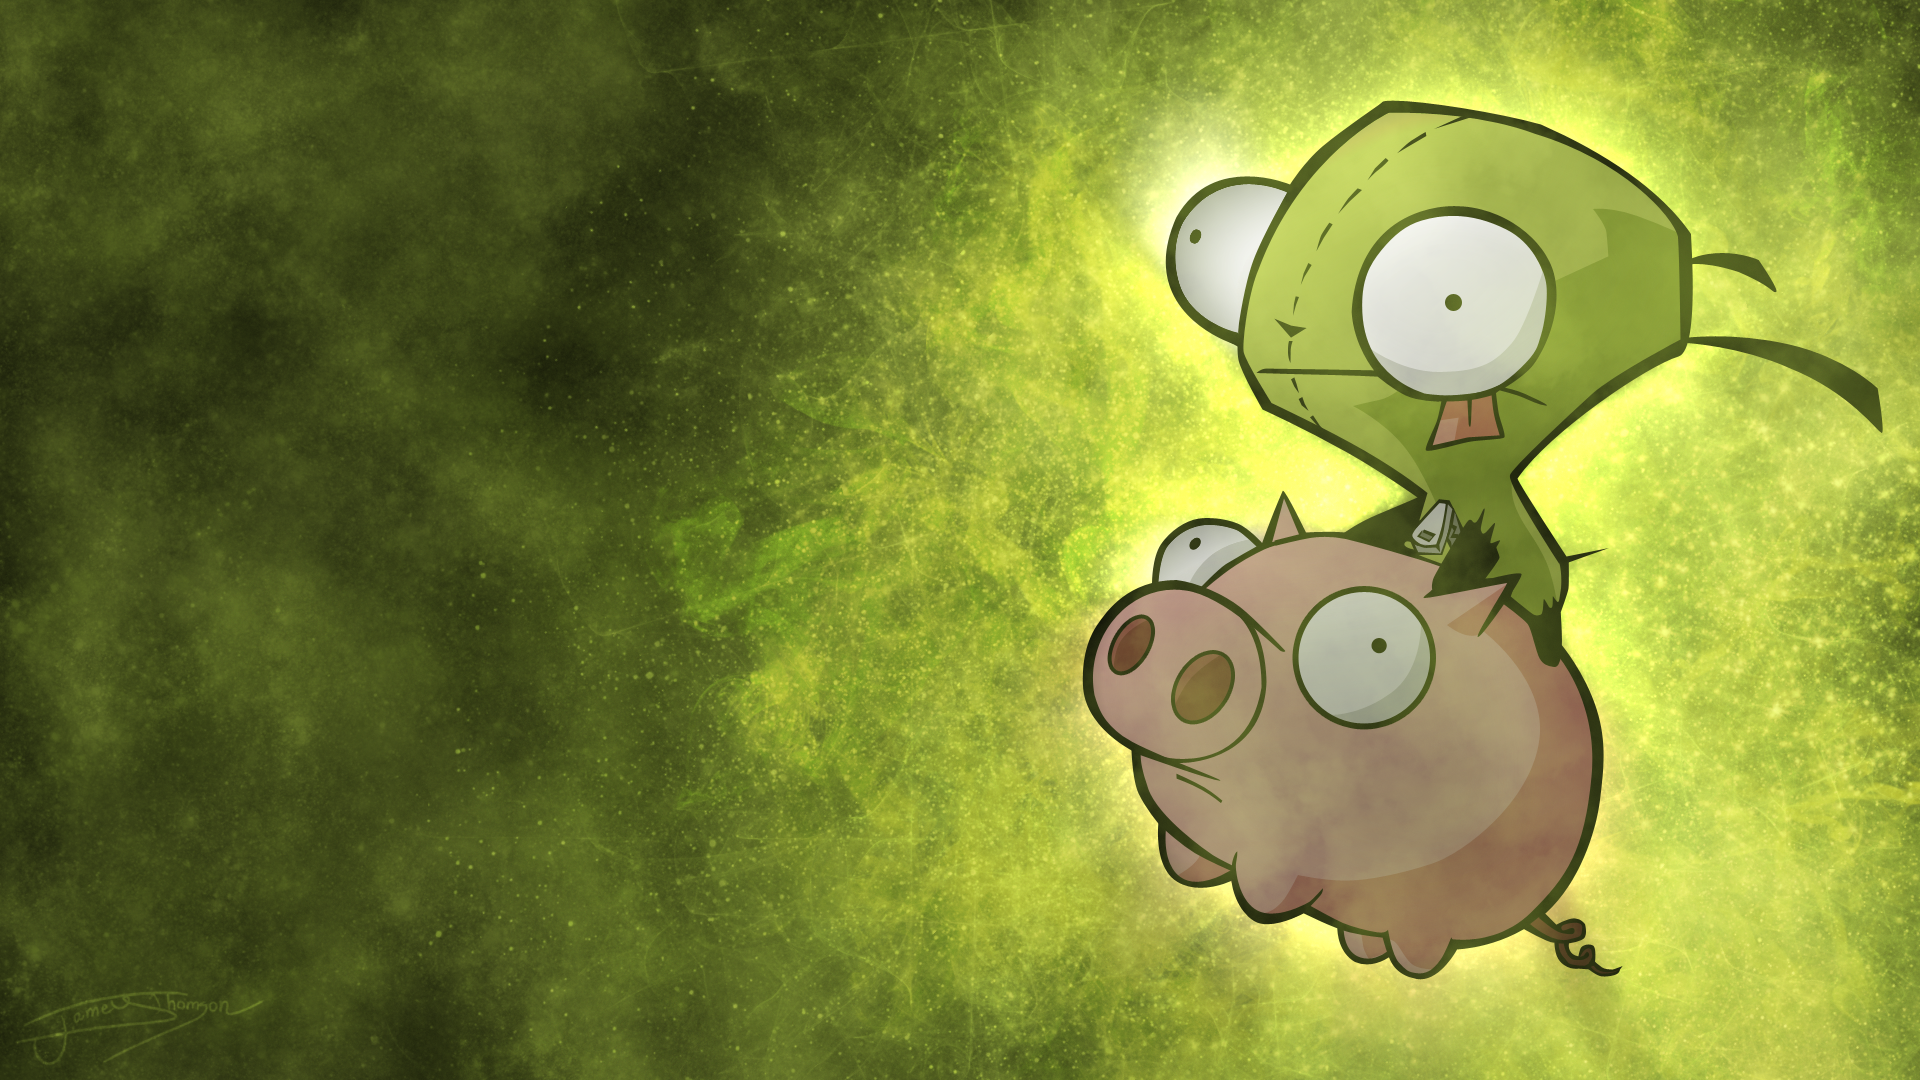 gir wallpaper by jamey4 on deviantart